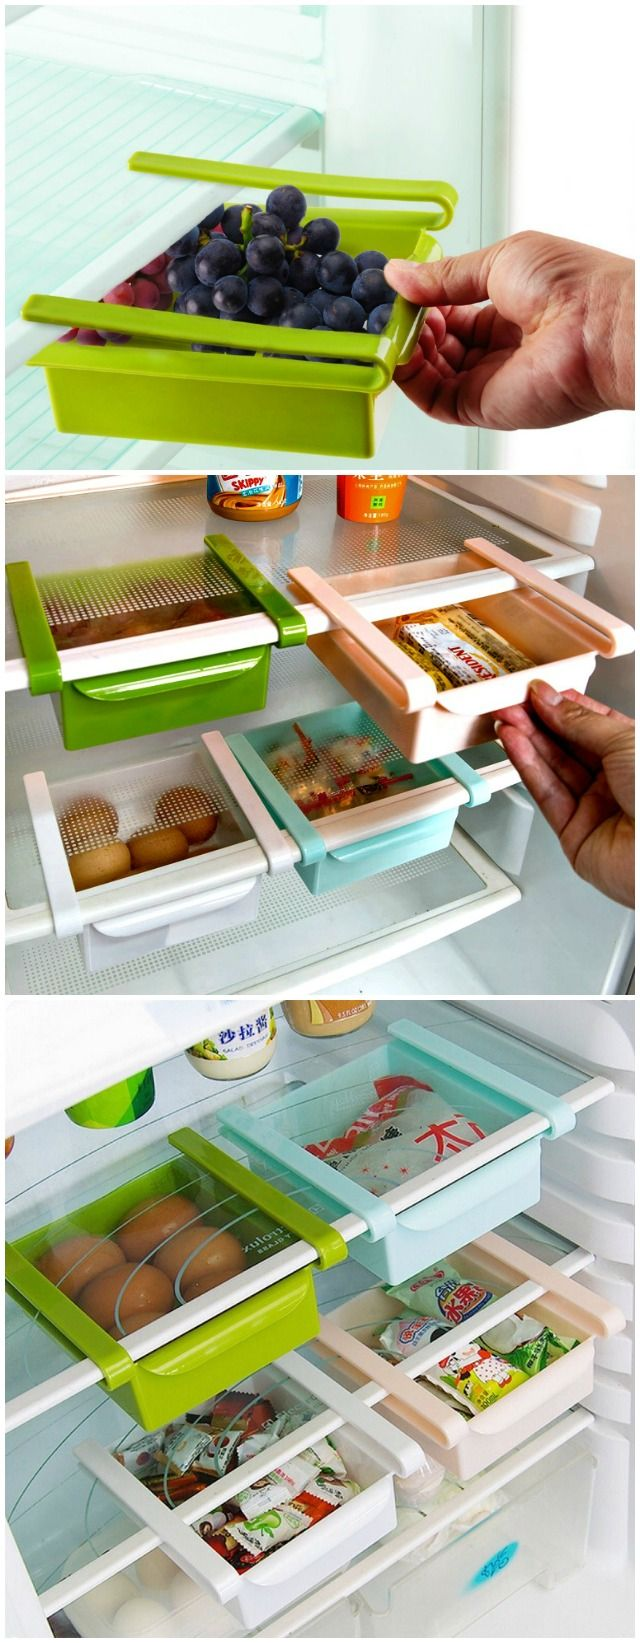 Double your Storage Space with the Refrigerator Sliding Drawer - GetdatGadget